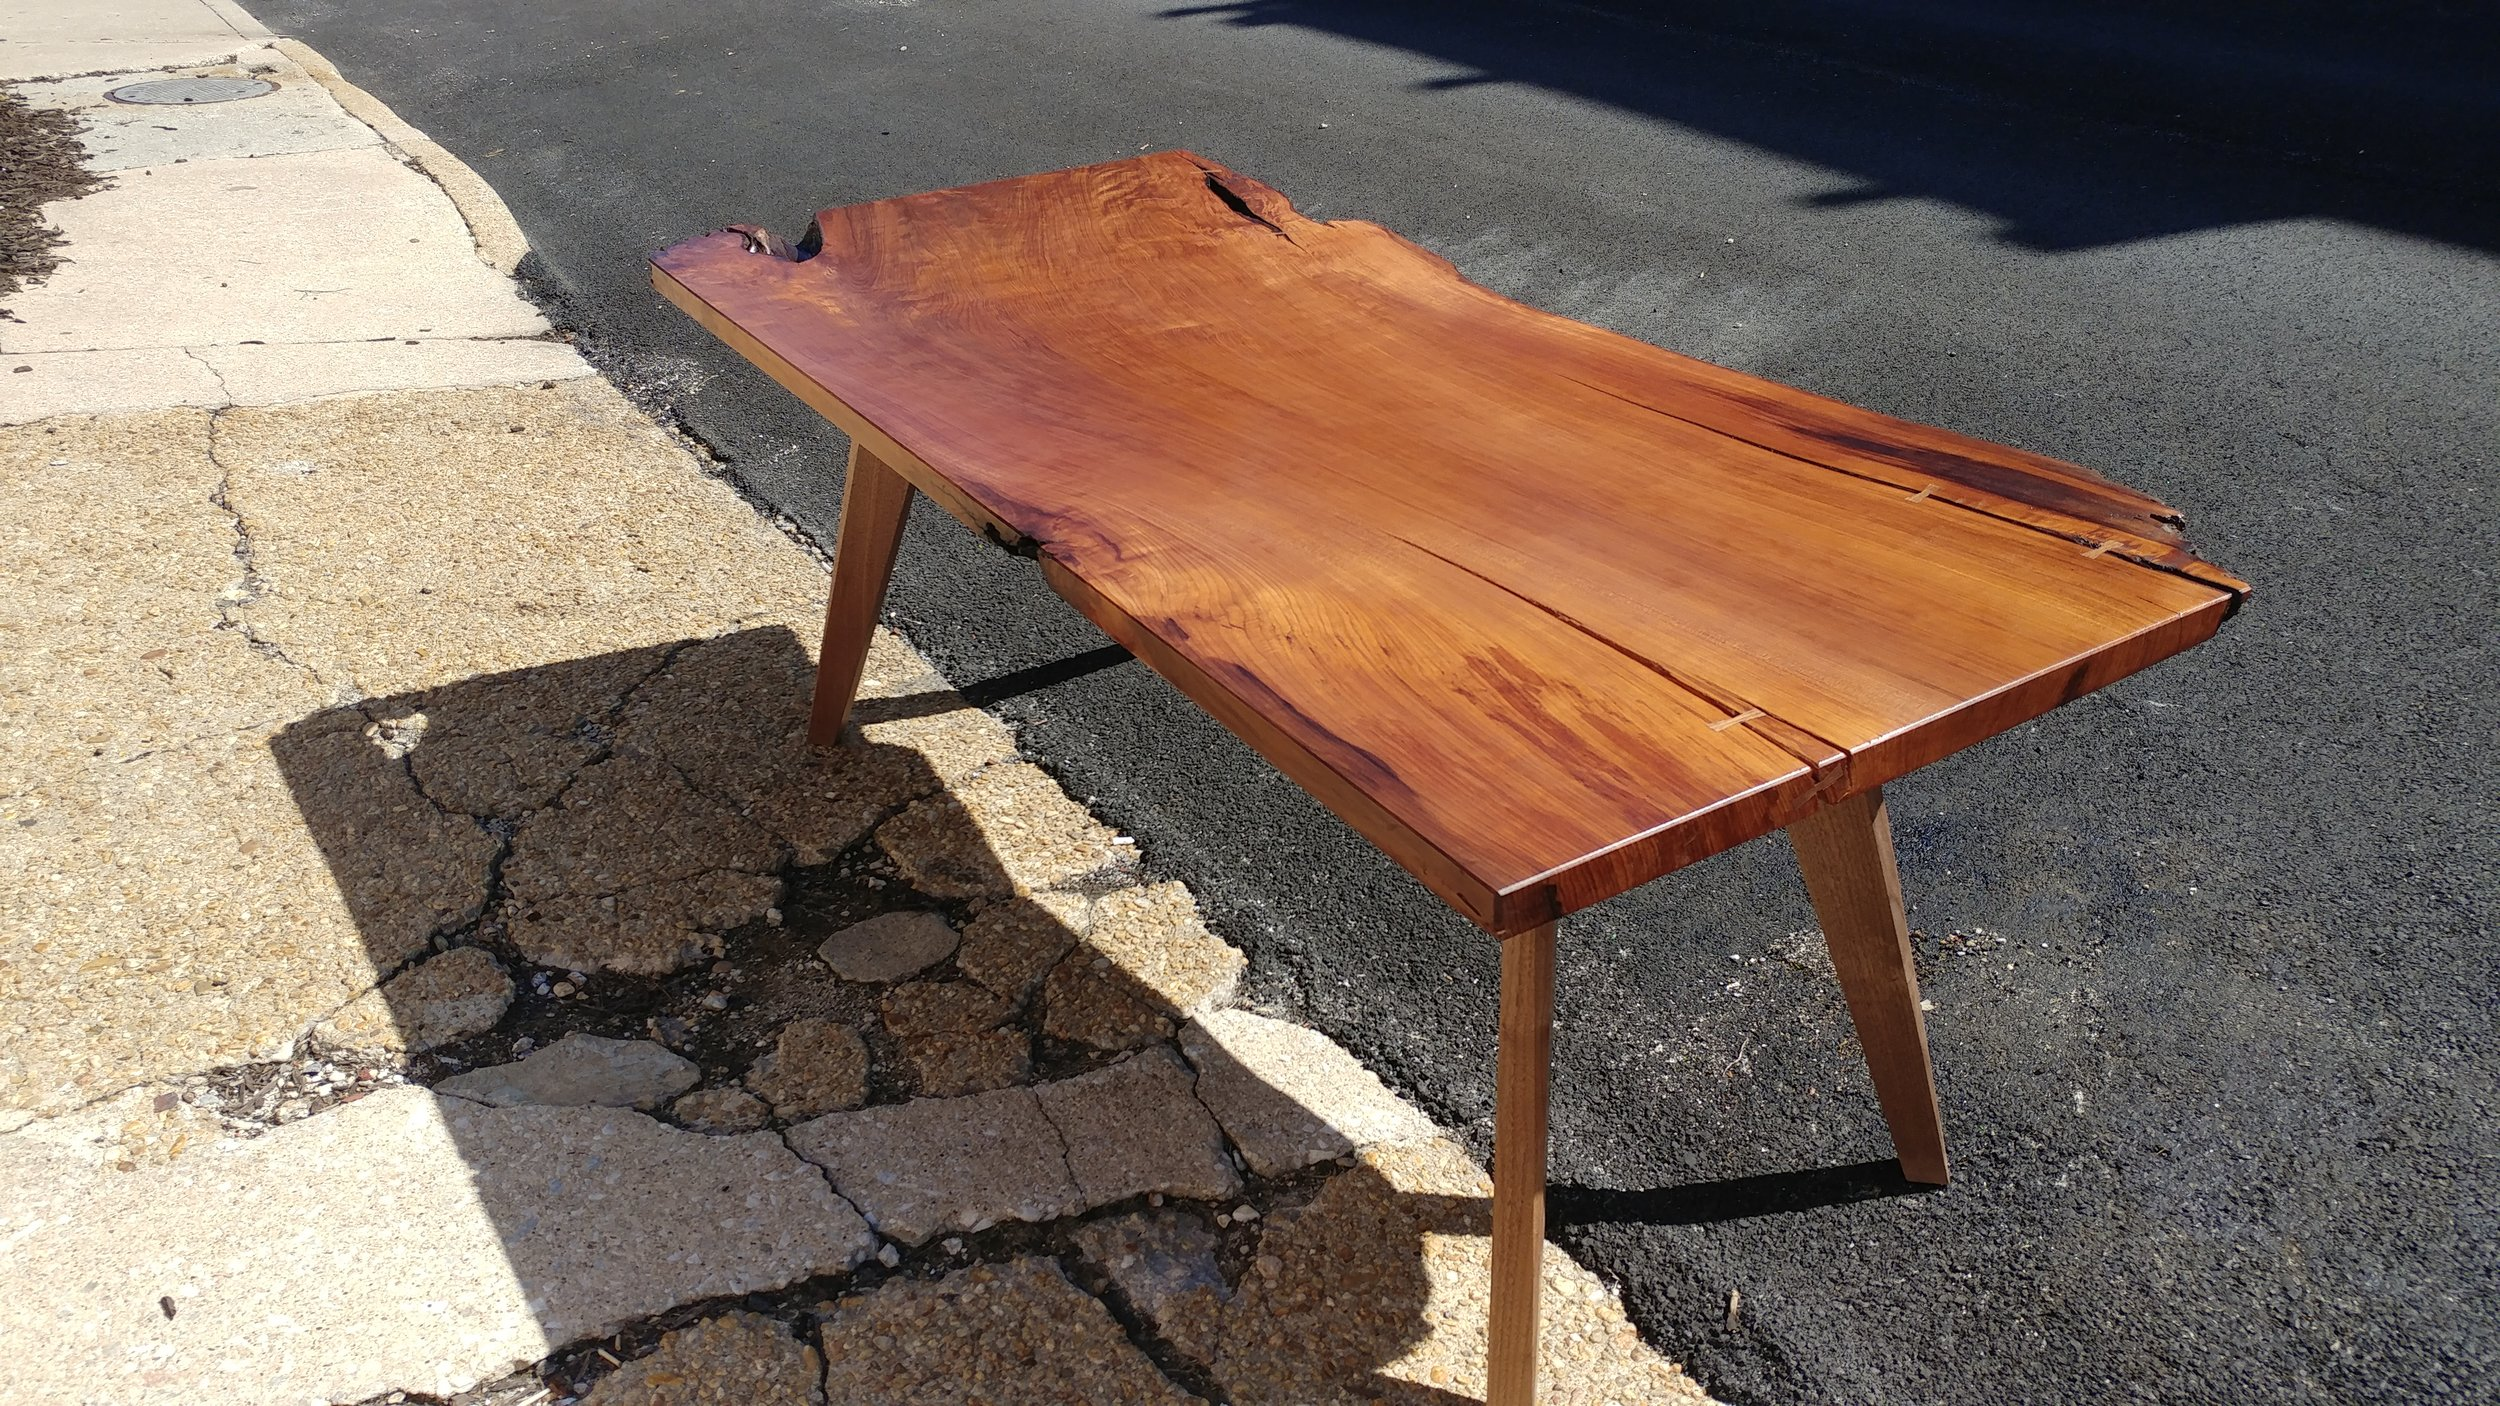 The comissioned table features a live edge.